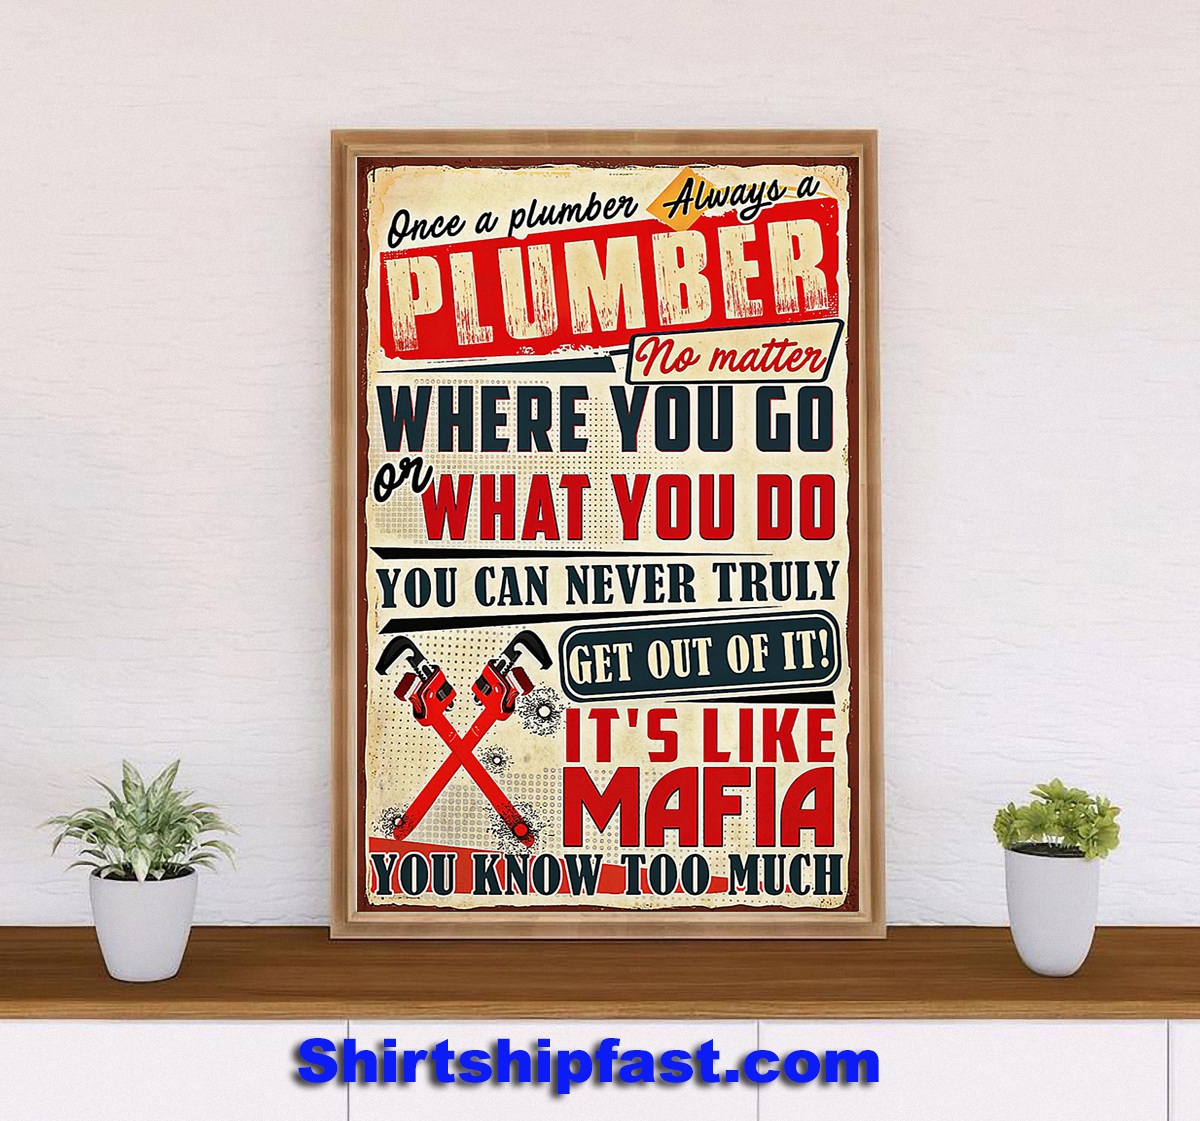 Once a plumber always a plumber poster - Picture 2